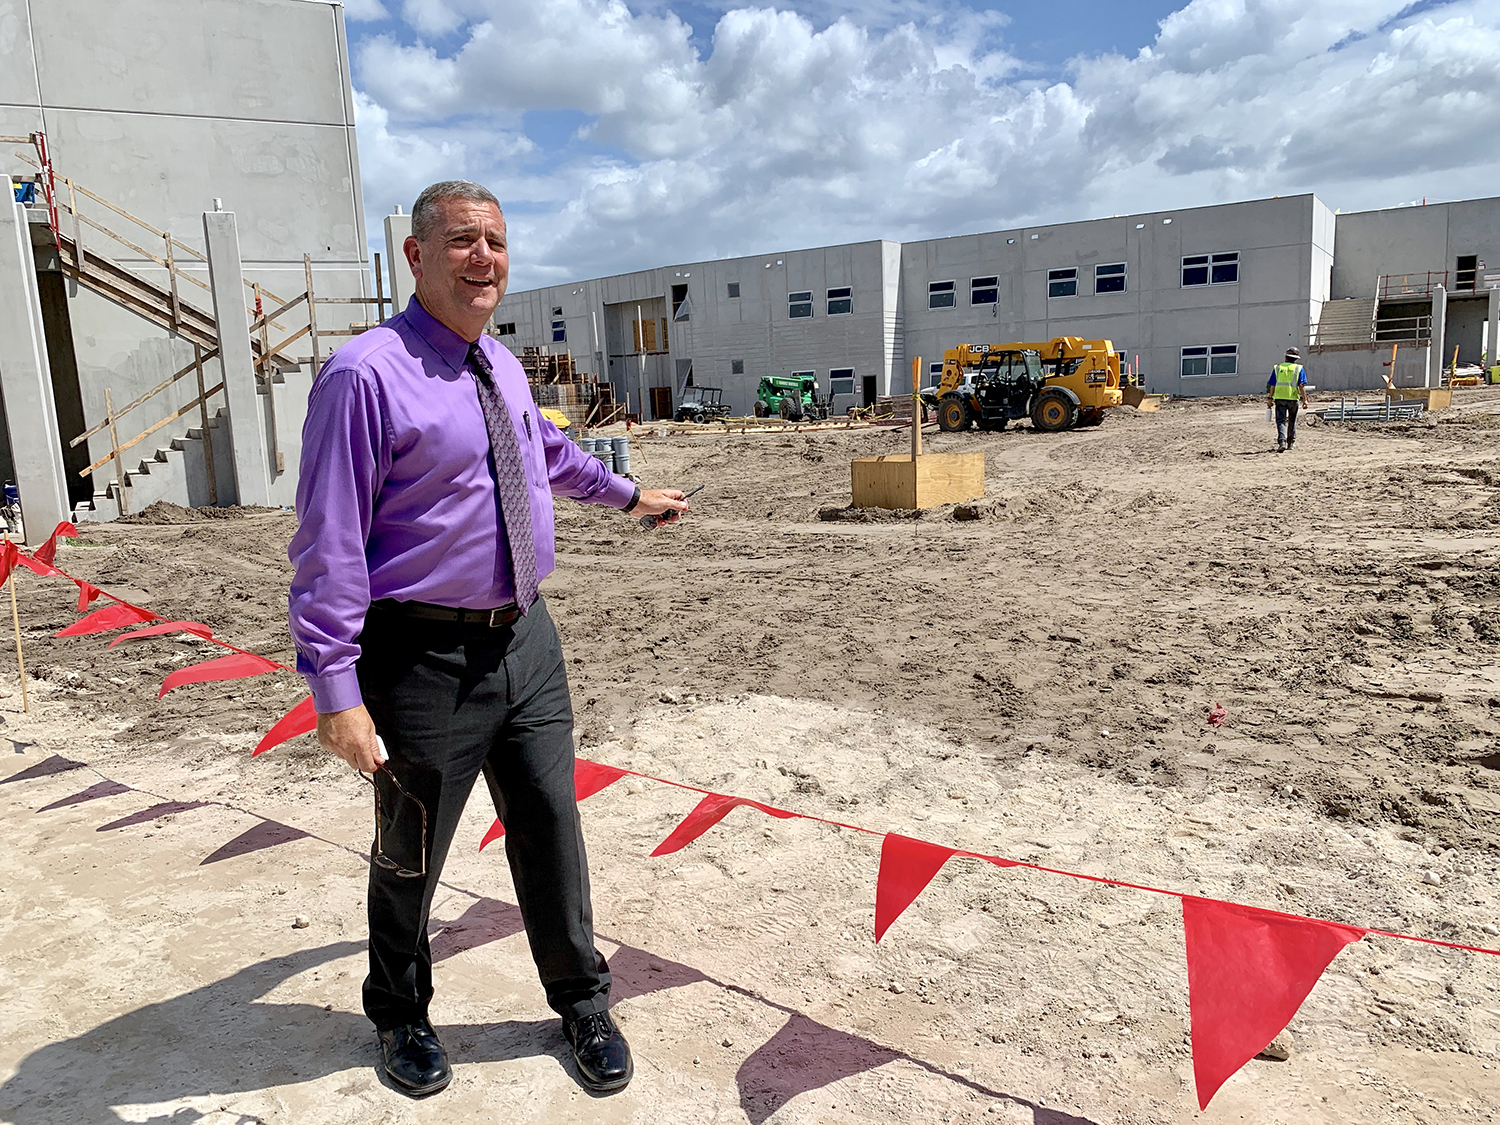 New High School To Offer Myriad Of Choices The Observer News South Shore Riverview Sun City Center